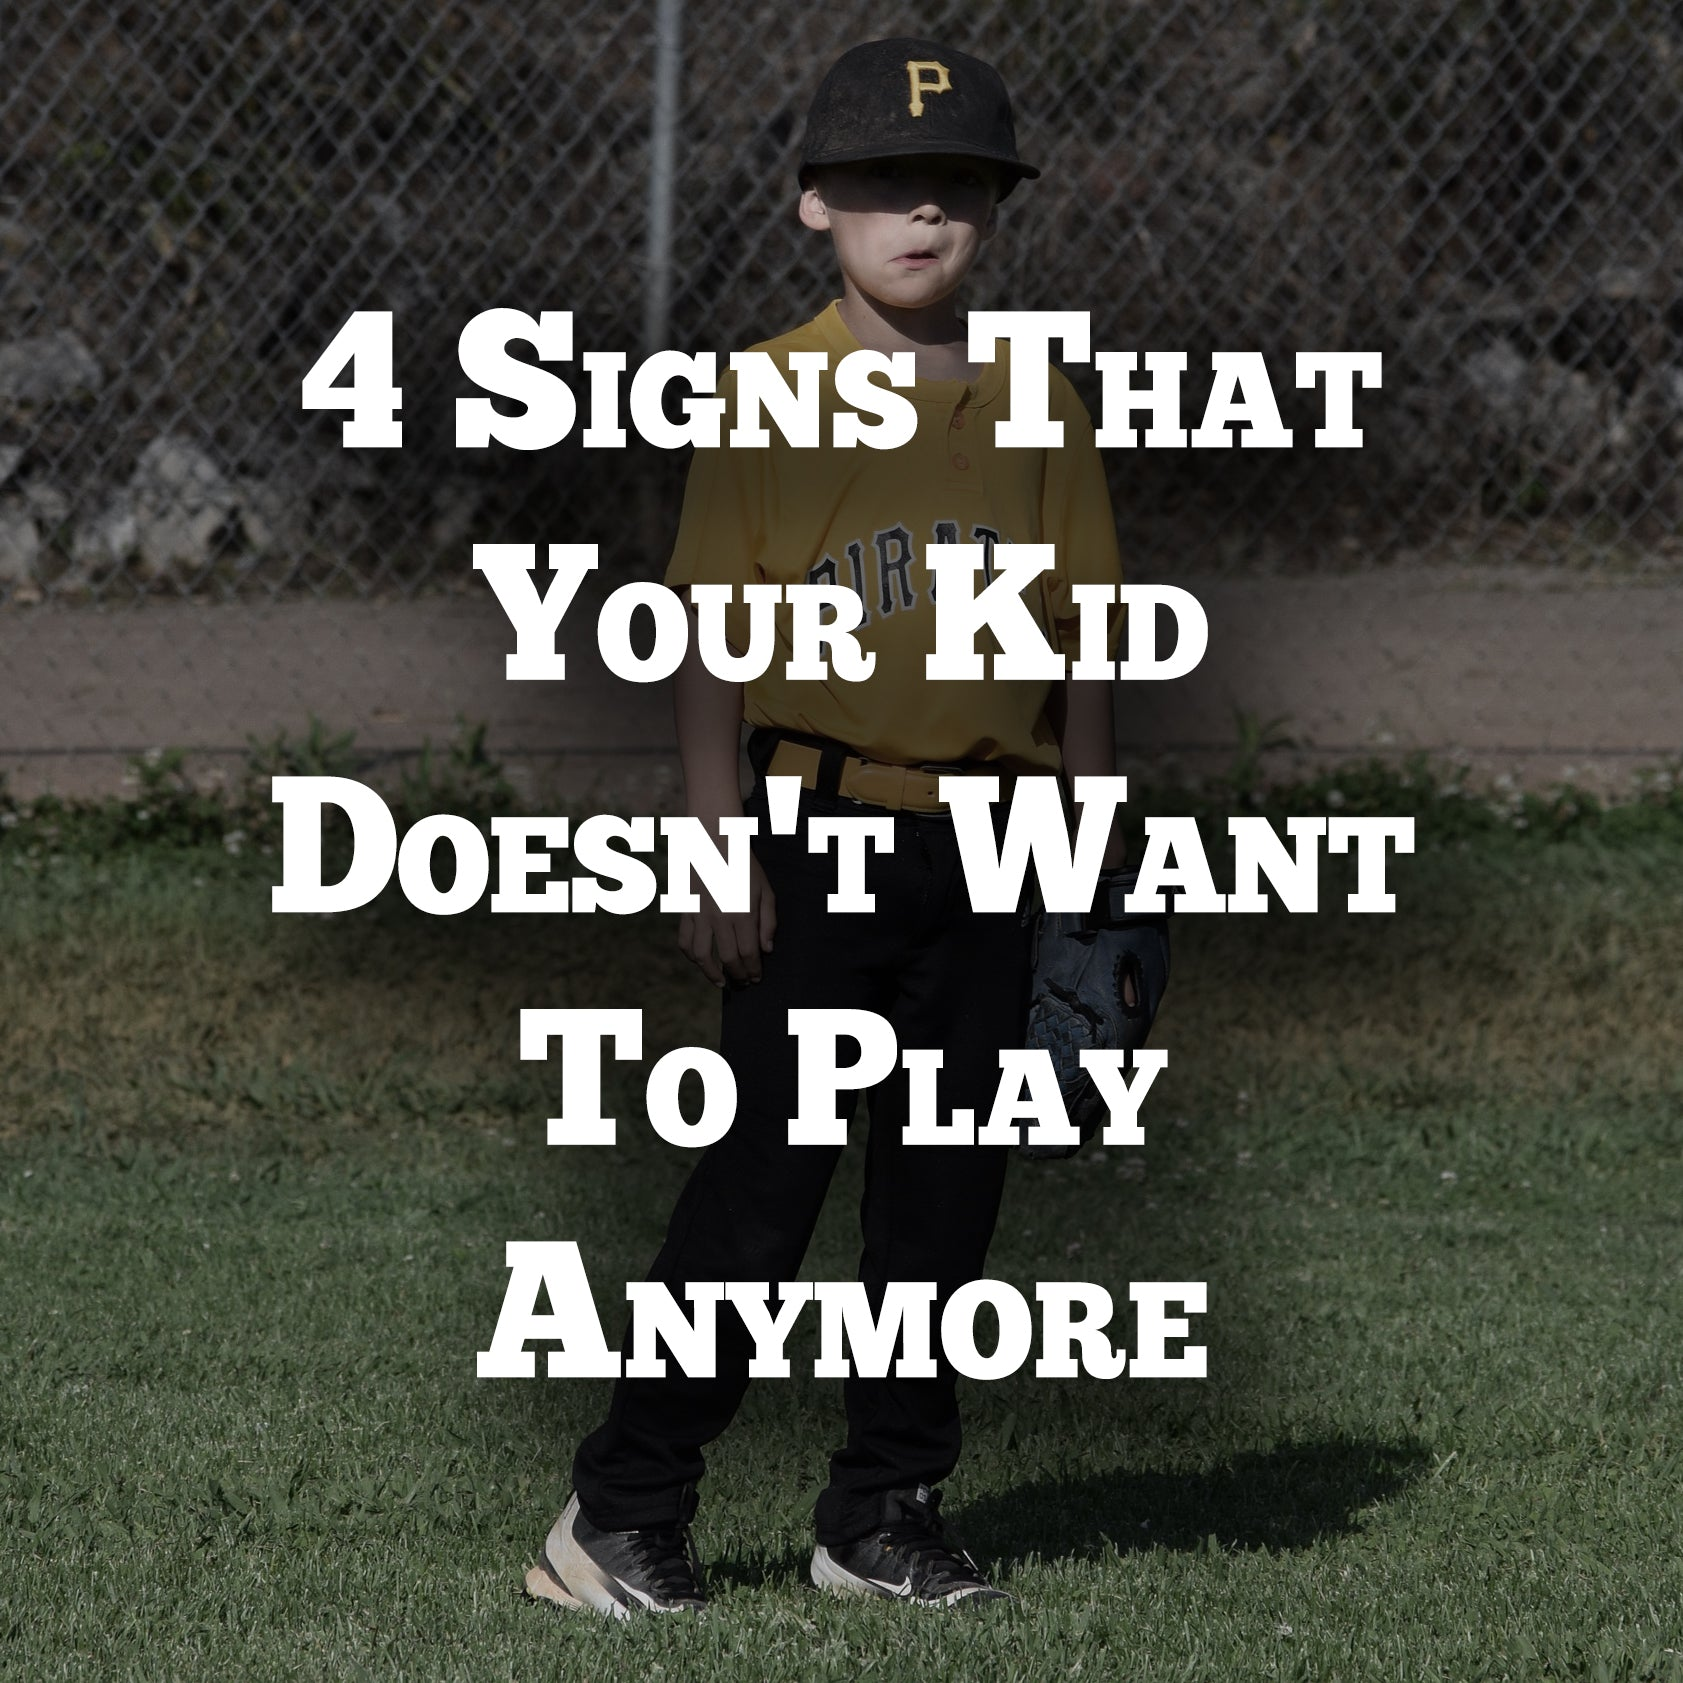 4 Signs Your Kid Doesn't Want to Play Anymore